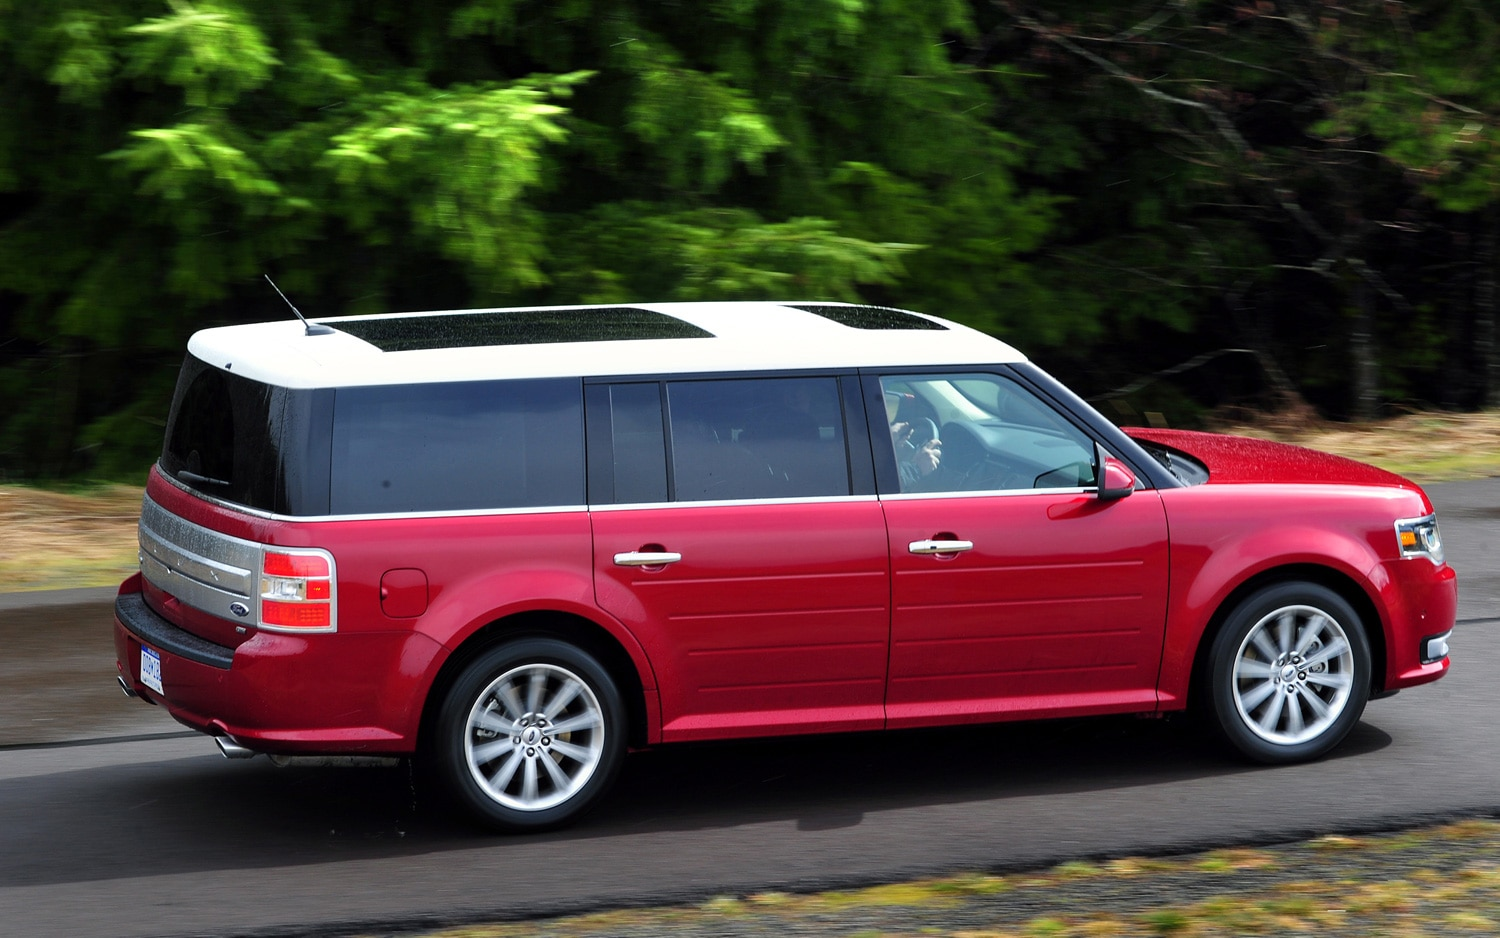 2011 ford flex red 200 interior and exterior images. Black Bedroom Furniture Sets. Home Design Ideas